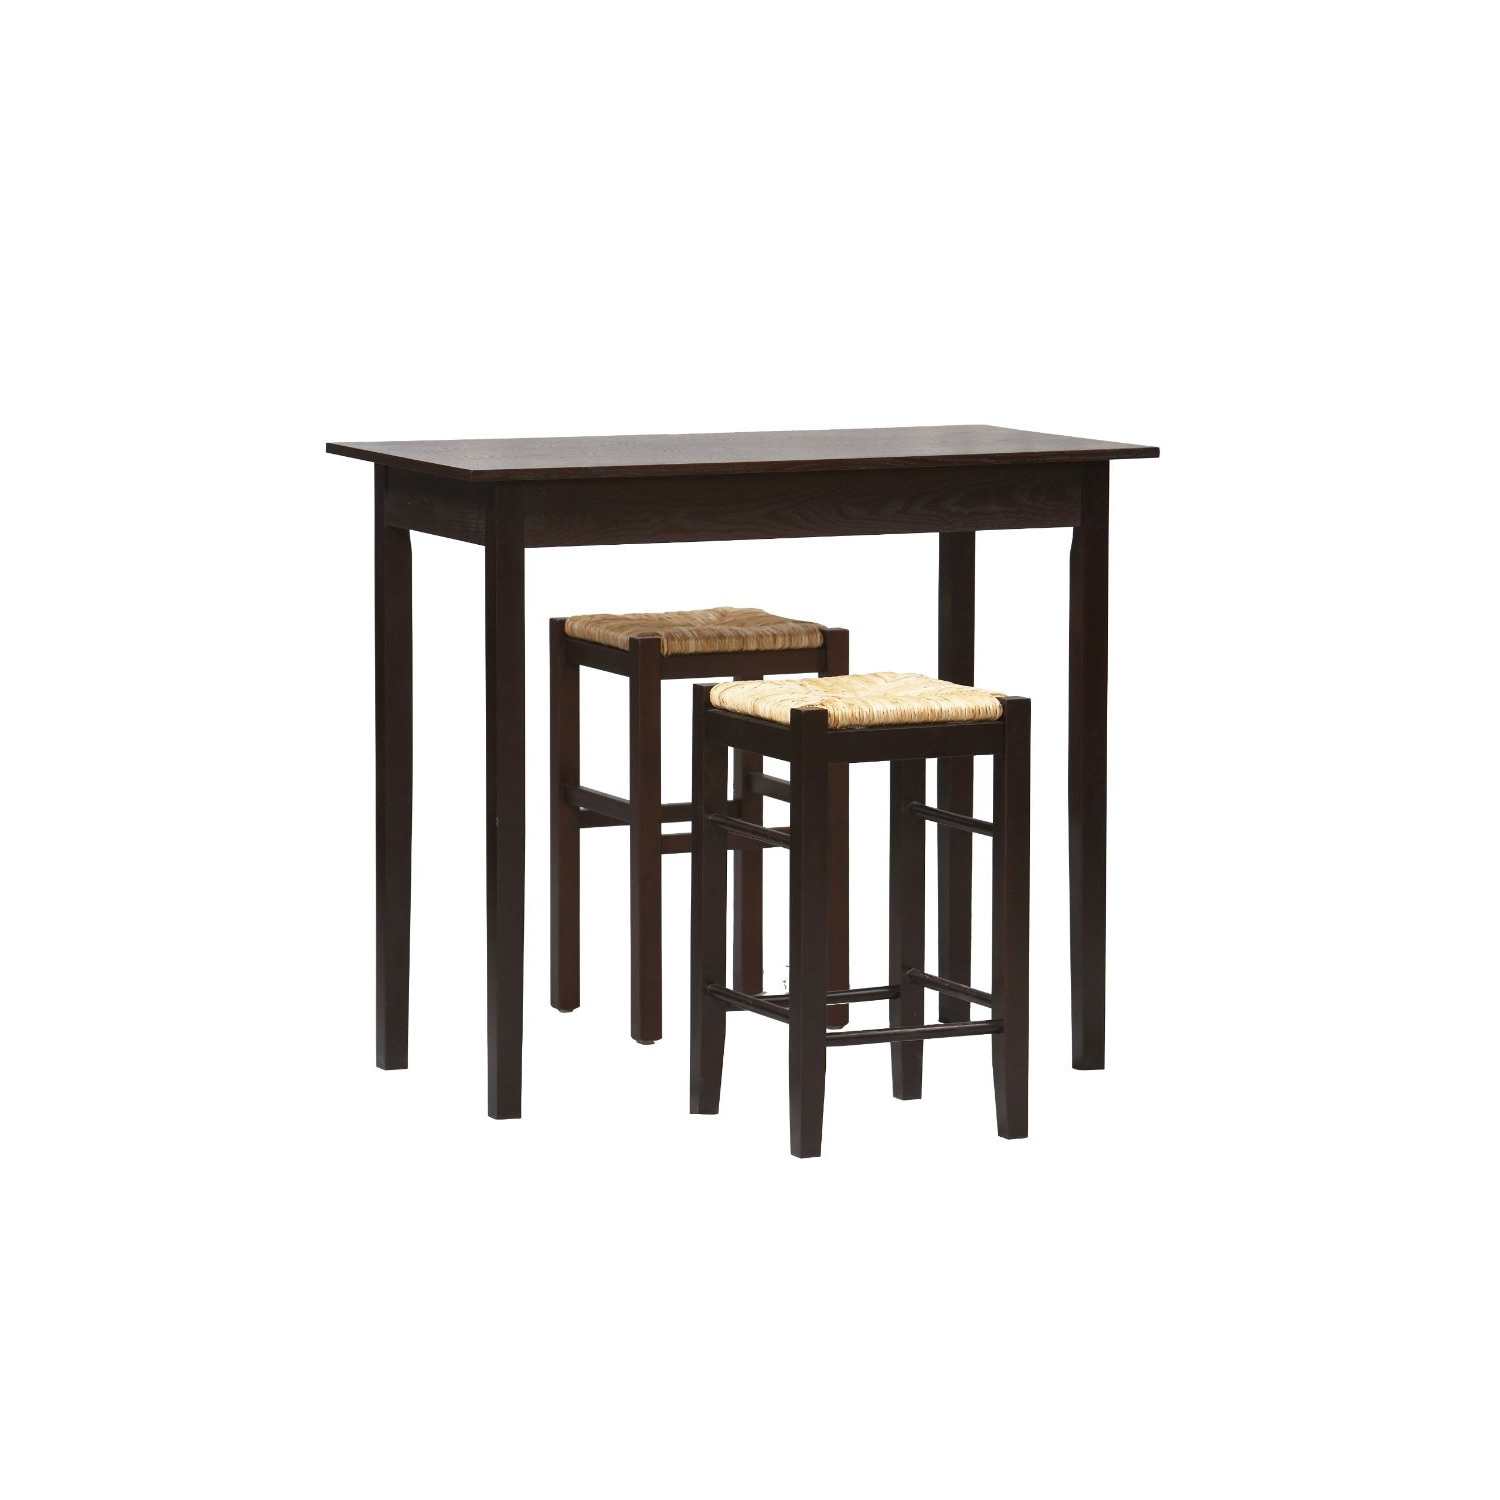 space saving dining table and 2 chairs two seat kitchen table this 3 piece espresso dining set with table and 2 backless stools has space saving convenience